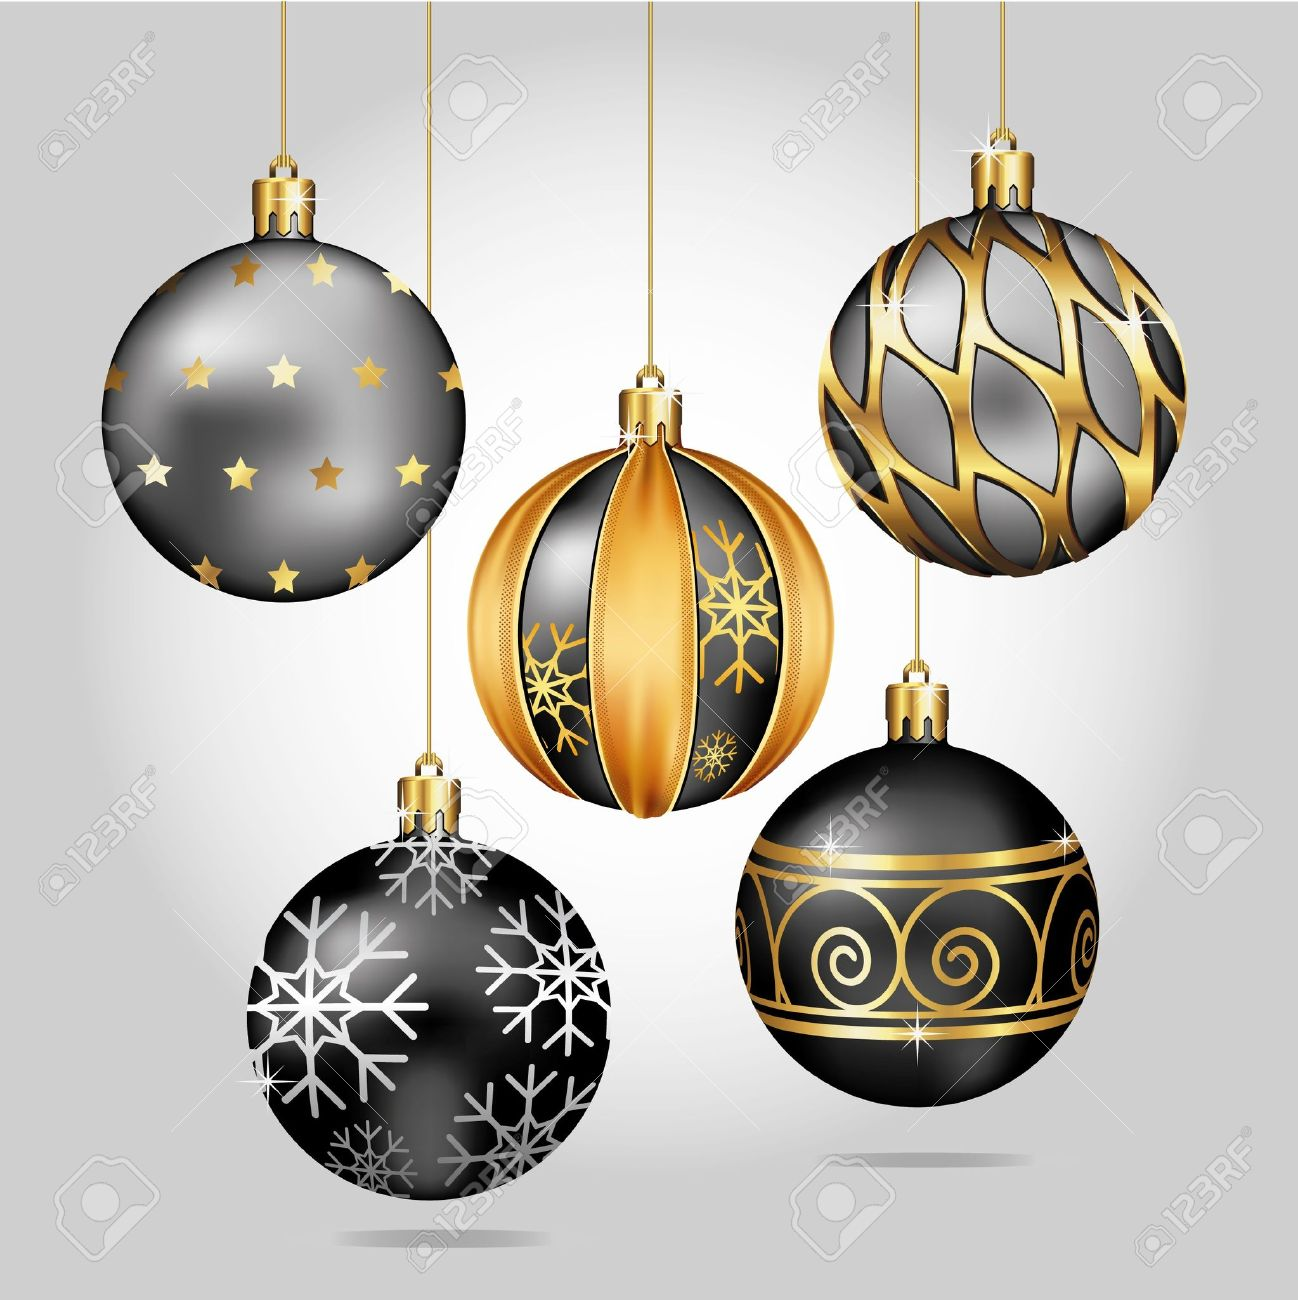 Christmas Ornaments Hanging on Gold Thread Stock Vector - 11375569